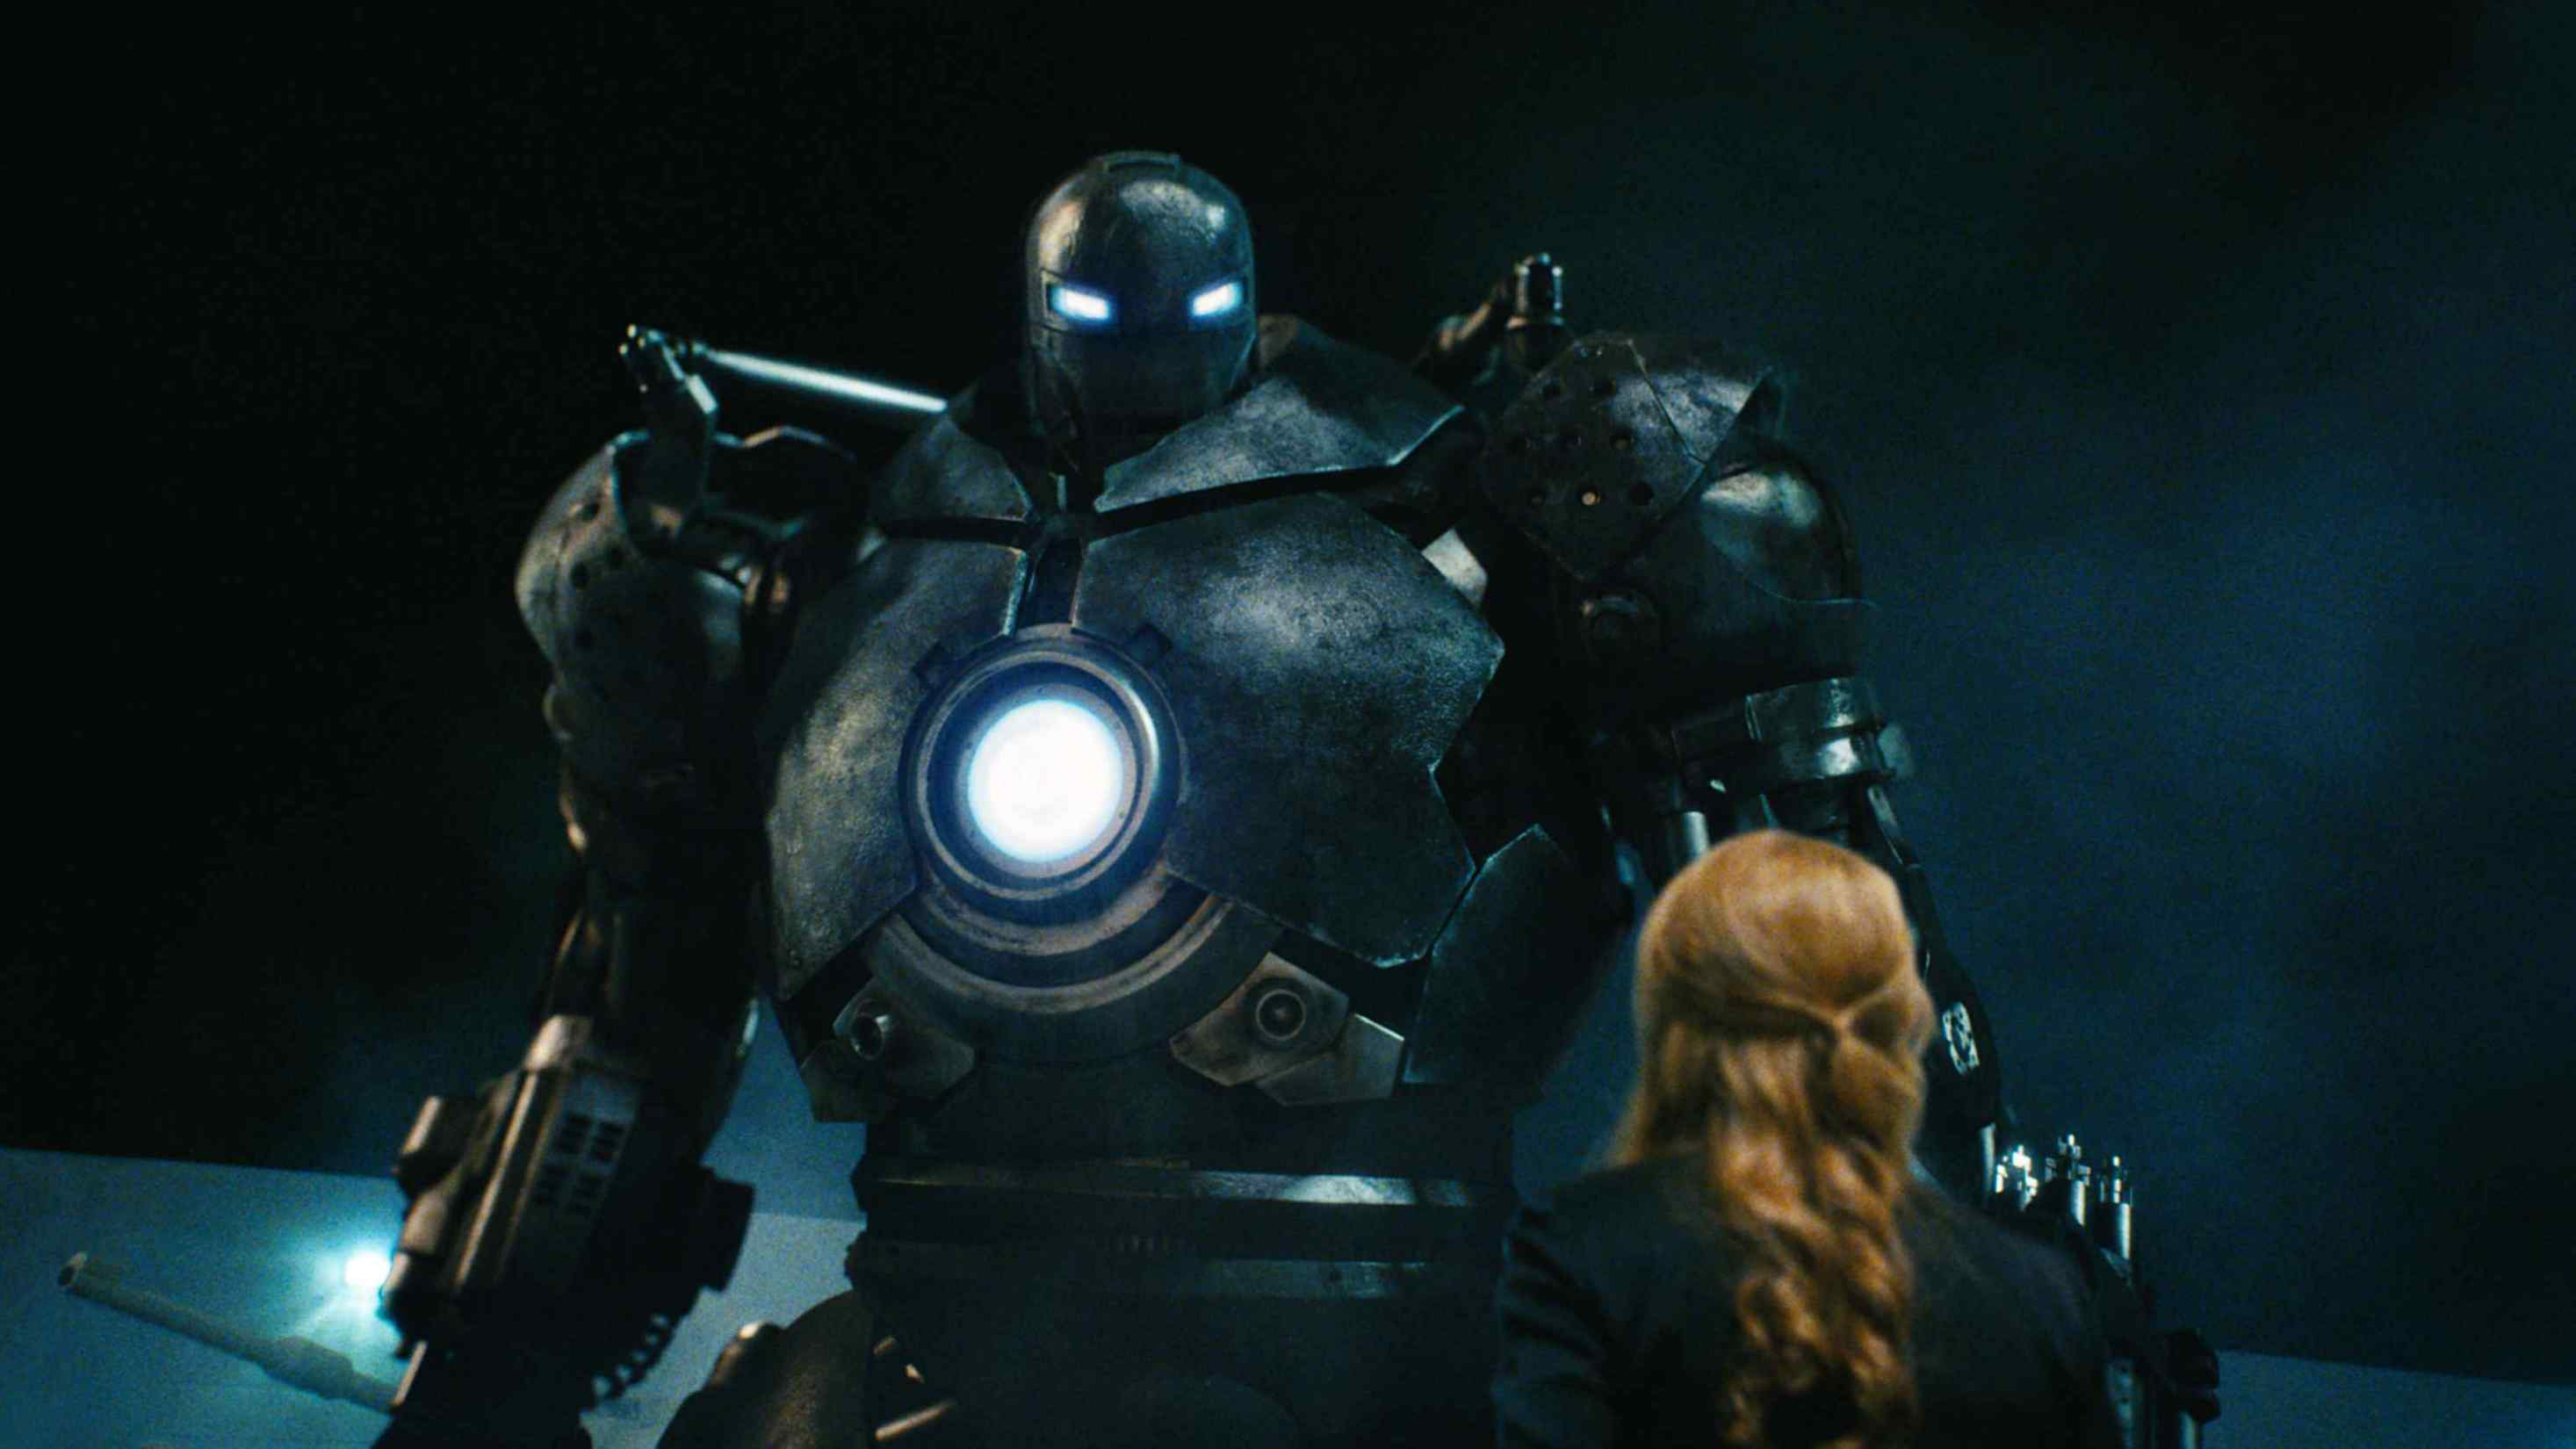 http://images.wikia.com/bioniclecrossovers/images/9/96/Ironmonger&pepper.jpg